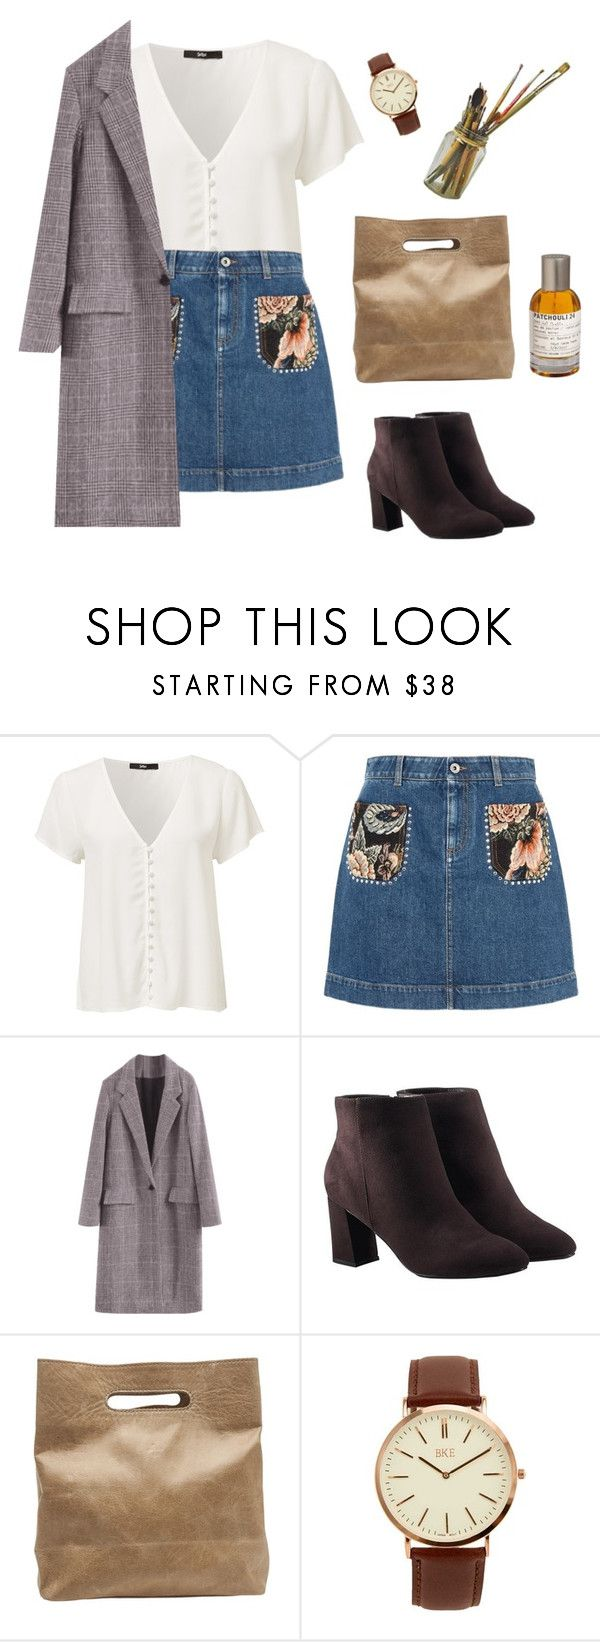 ✨ by heathermoors on Polyvore featuring STELLA McCARTNEY, Avon, Marie Turnor, BKE and Le Labo